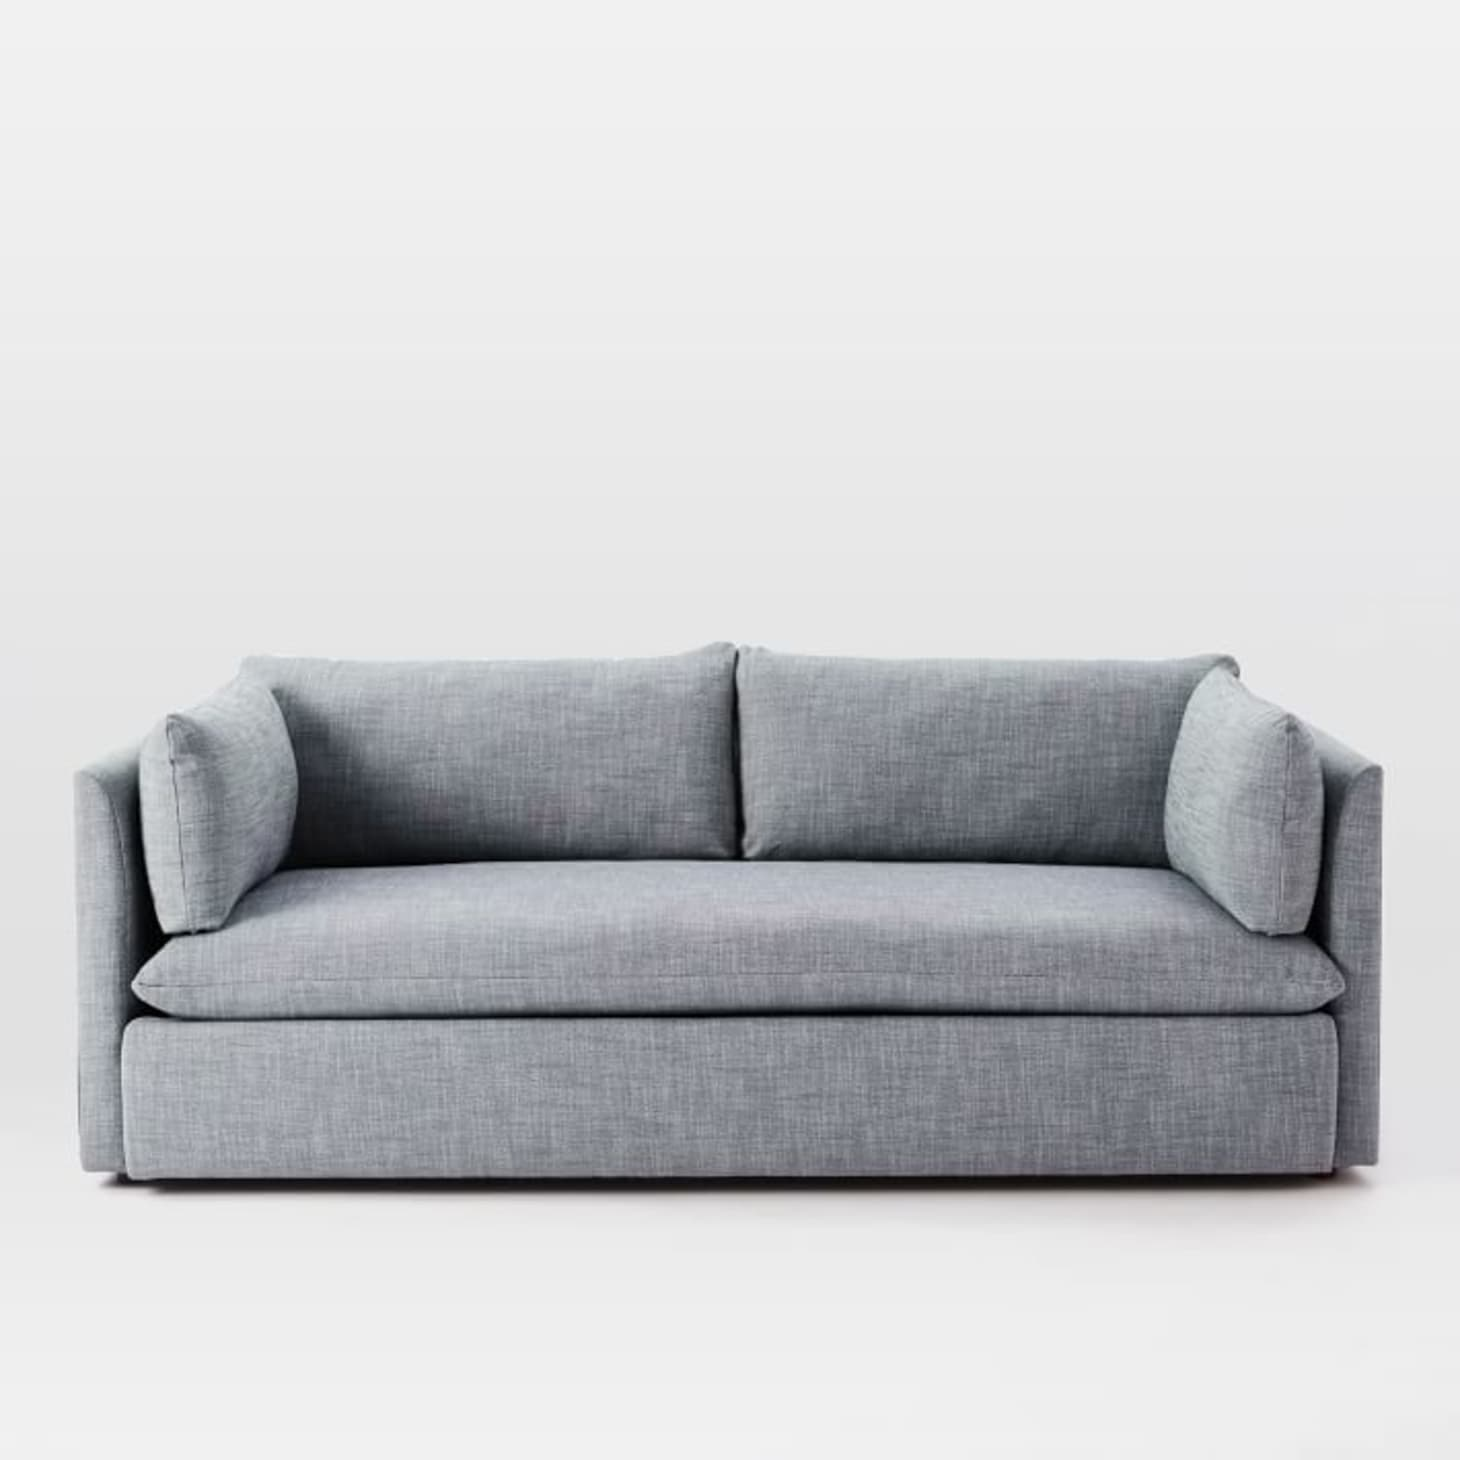 Surprising The Most Comfortable Sofas At West Elm Tested Reviewed Ocoug Best Dining Table And Chair Ideas Images Ocougorg